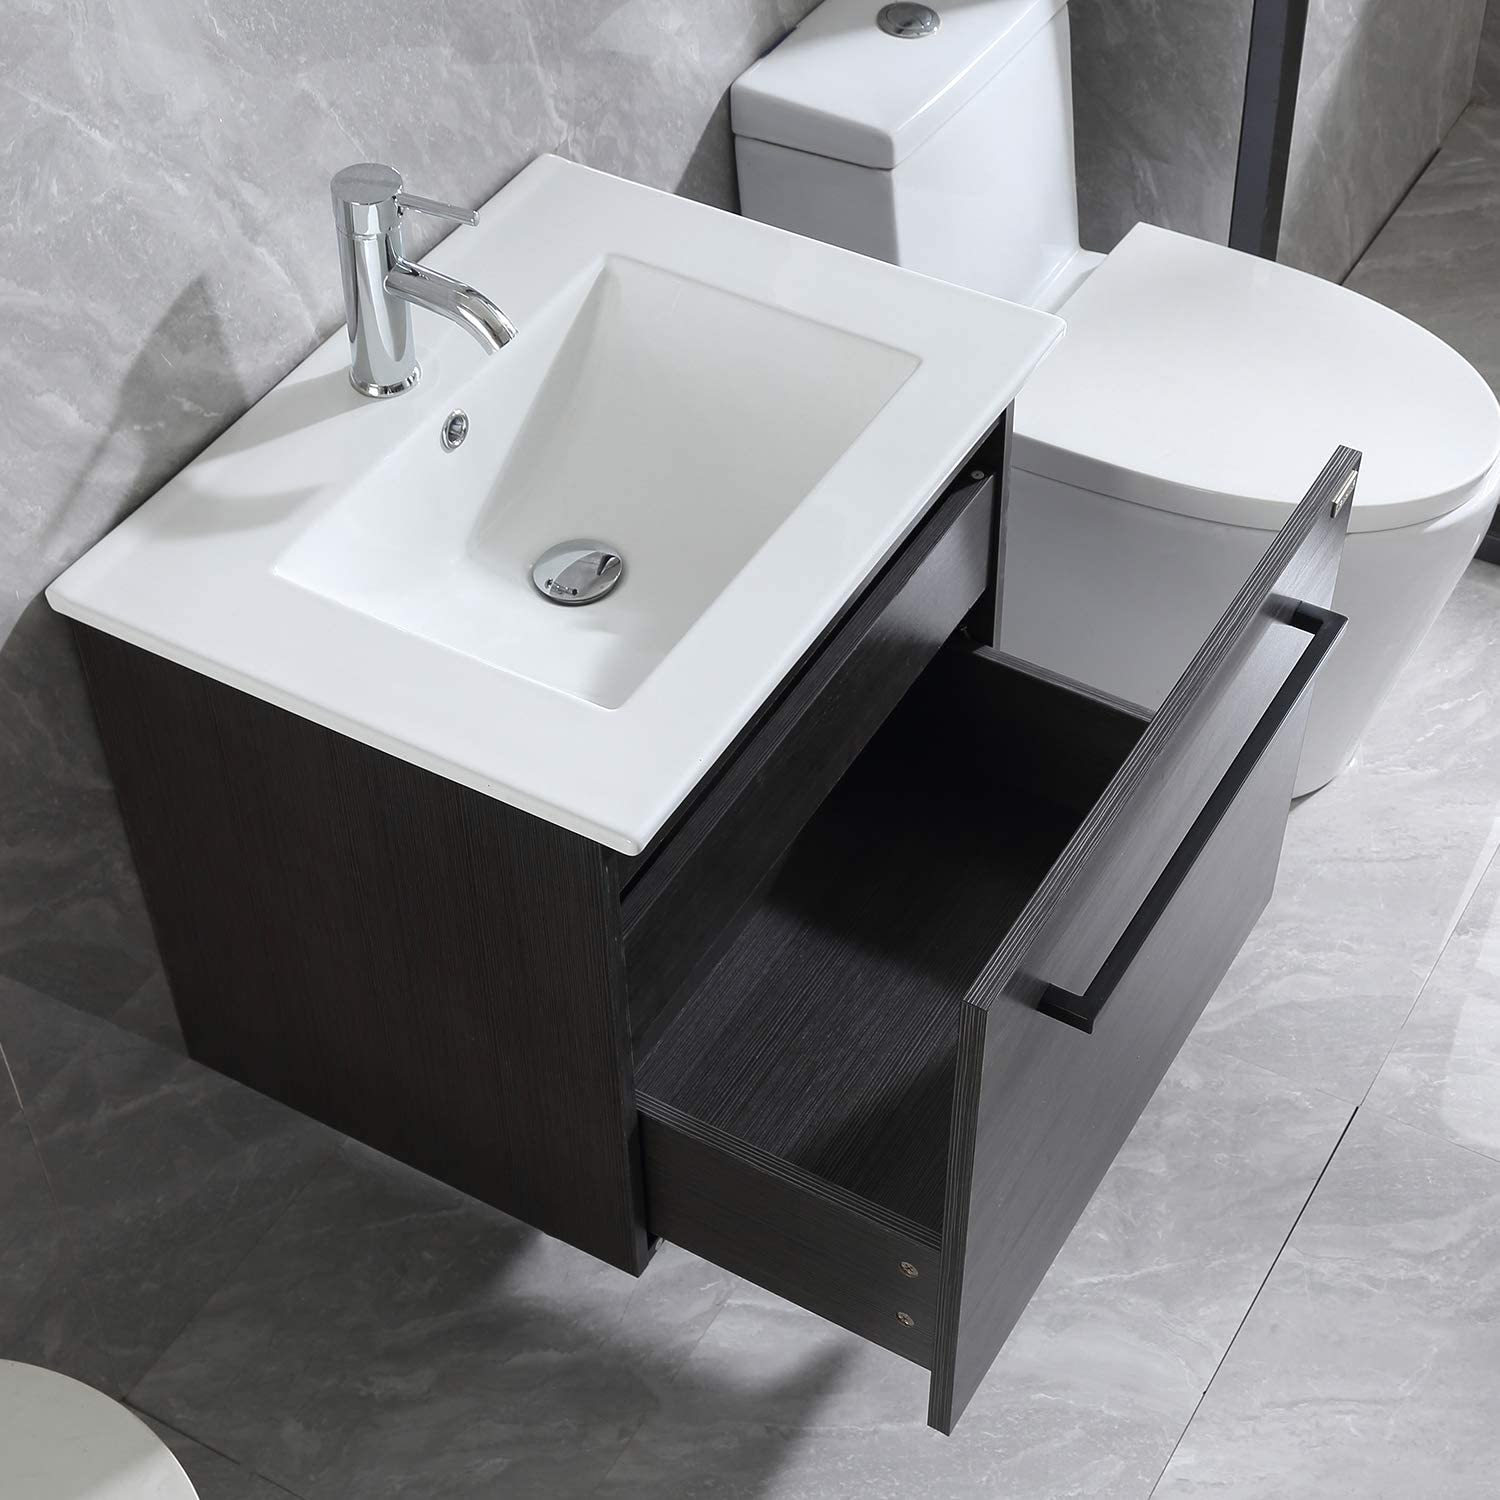 WONLINE 24 Bathroom Vanity Set Wall Mounted Cabinet with Sink Combo Chrome Faucet